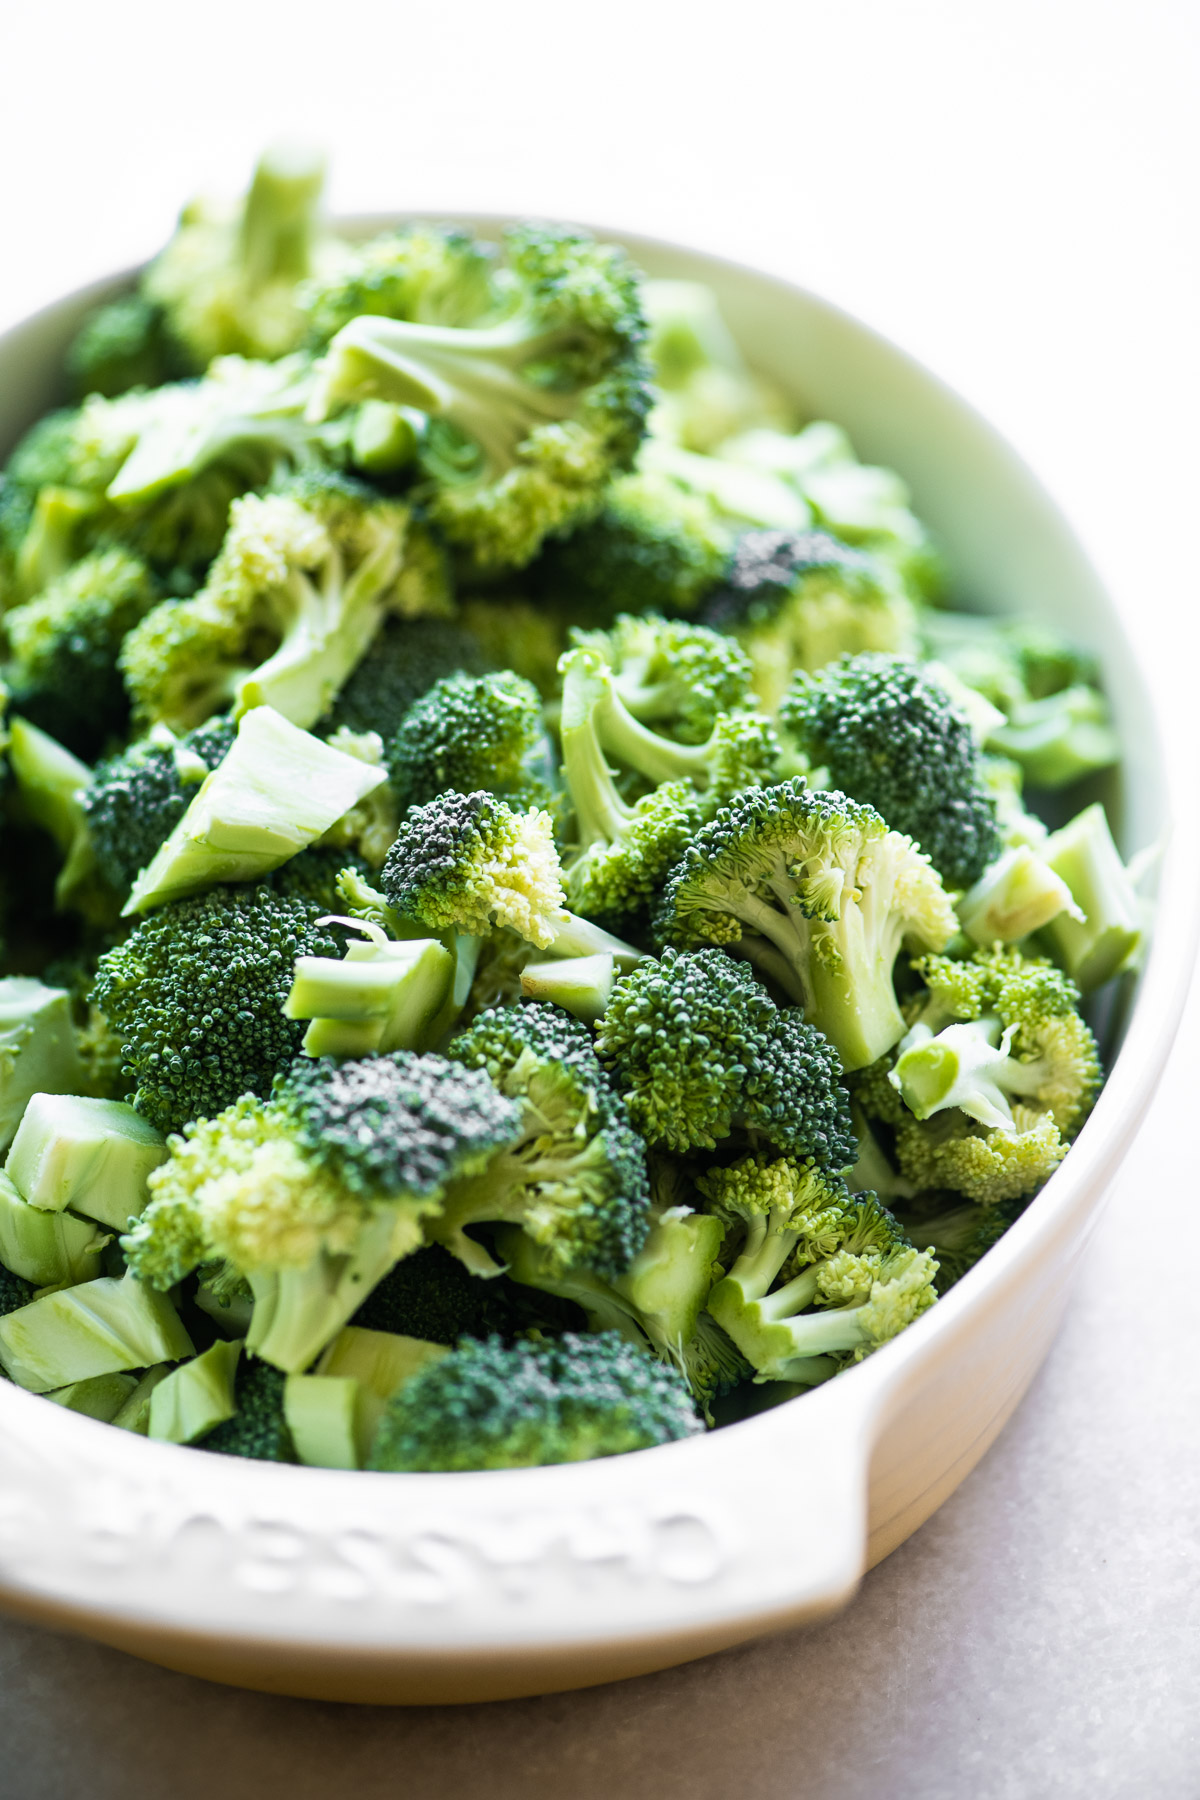 Fresh broccoli florets for broccoli cheese casserole